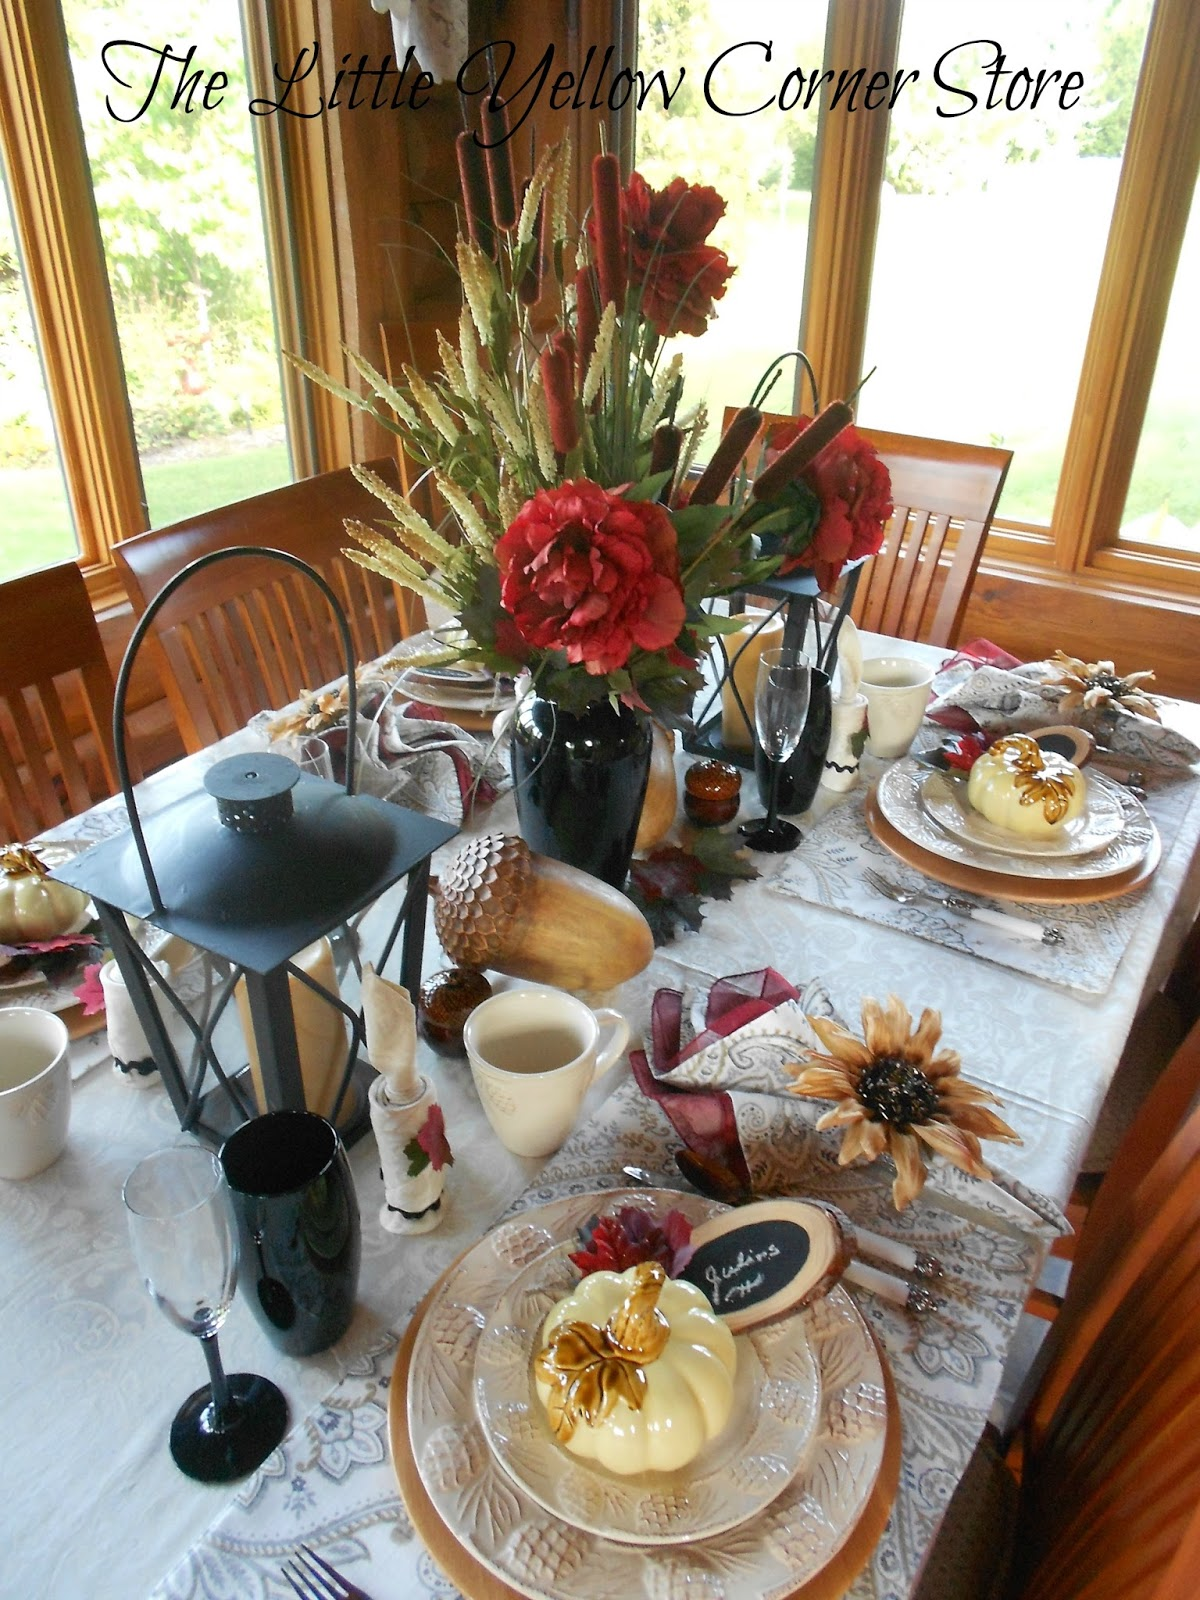 The Little Yellow Corner Store Autumn Candlelight Tablescape